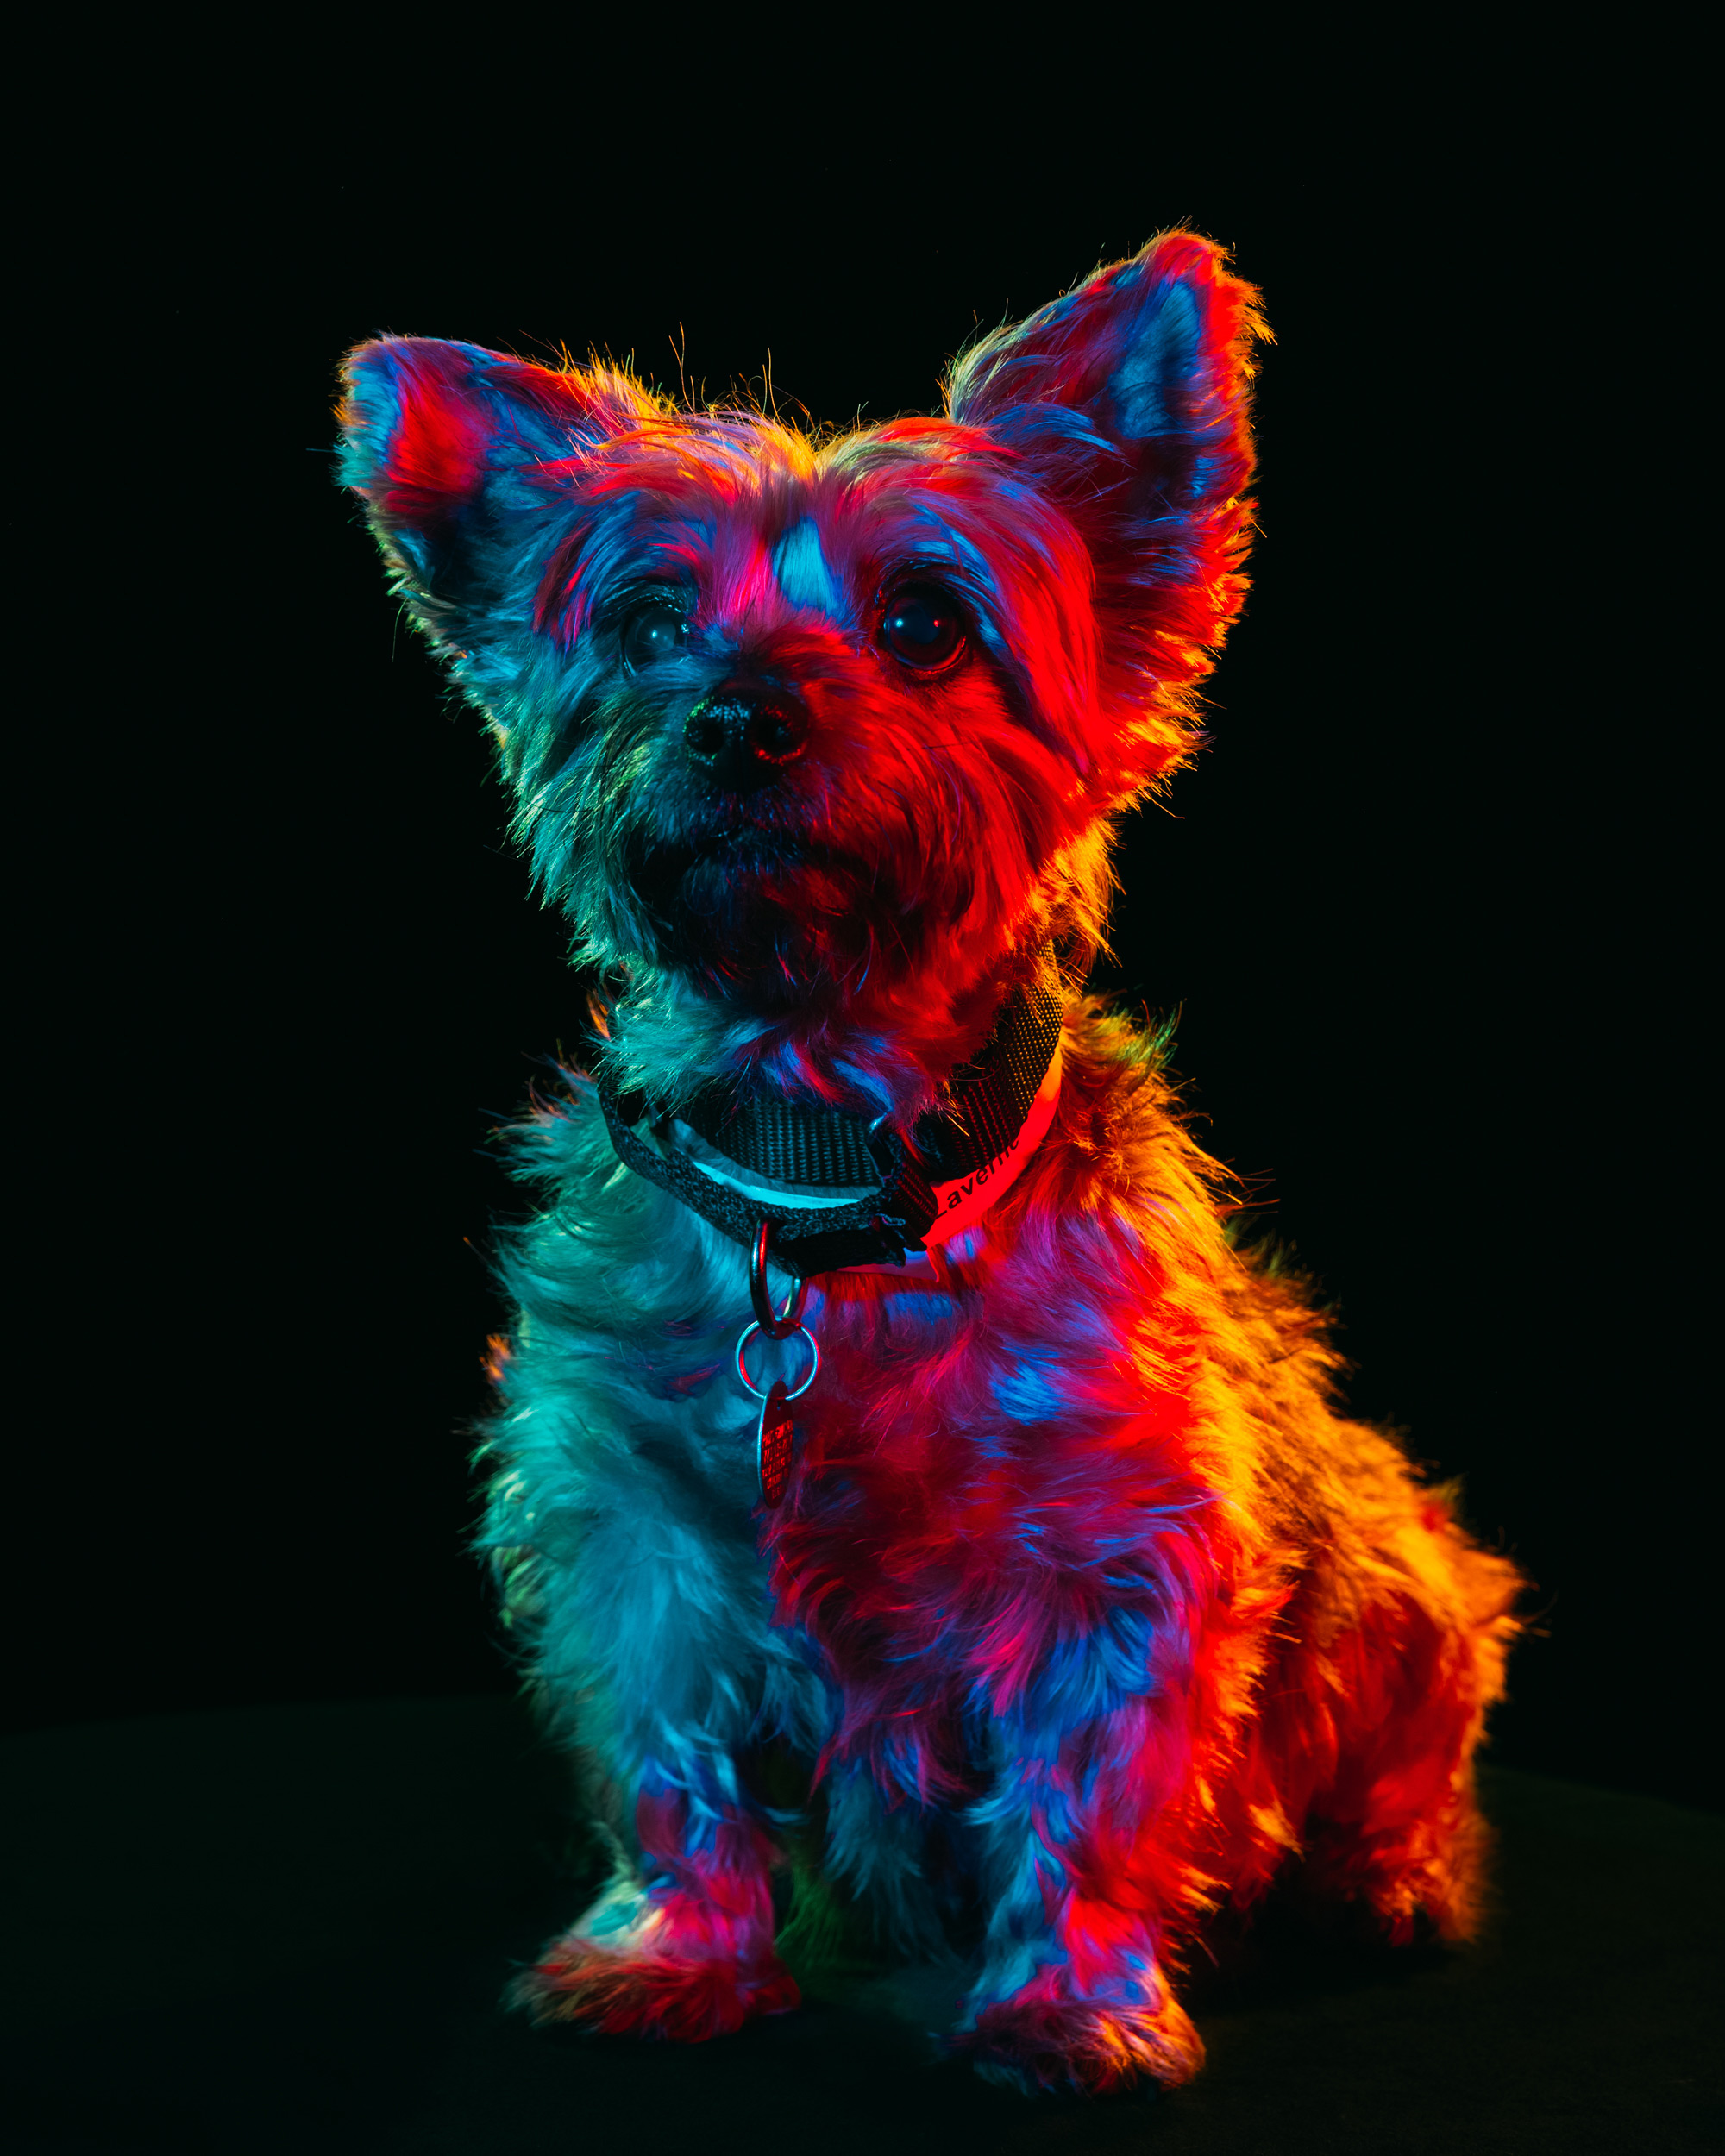 Colorful Portraits of Adoptable Dogs Photographed by Paul Octavious (6 pics)